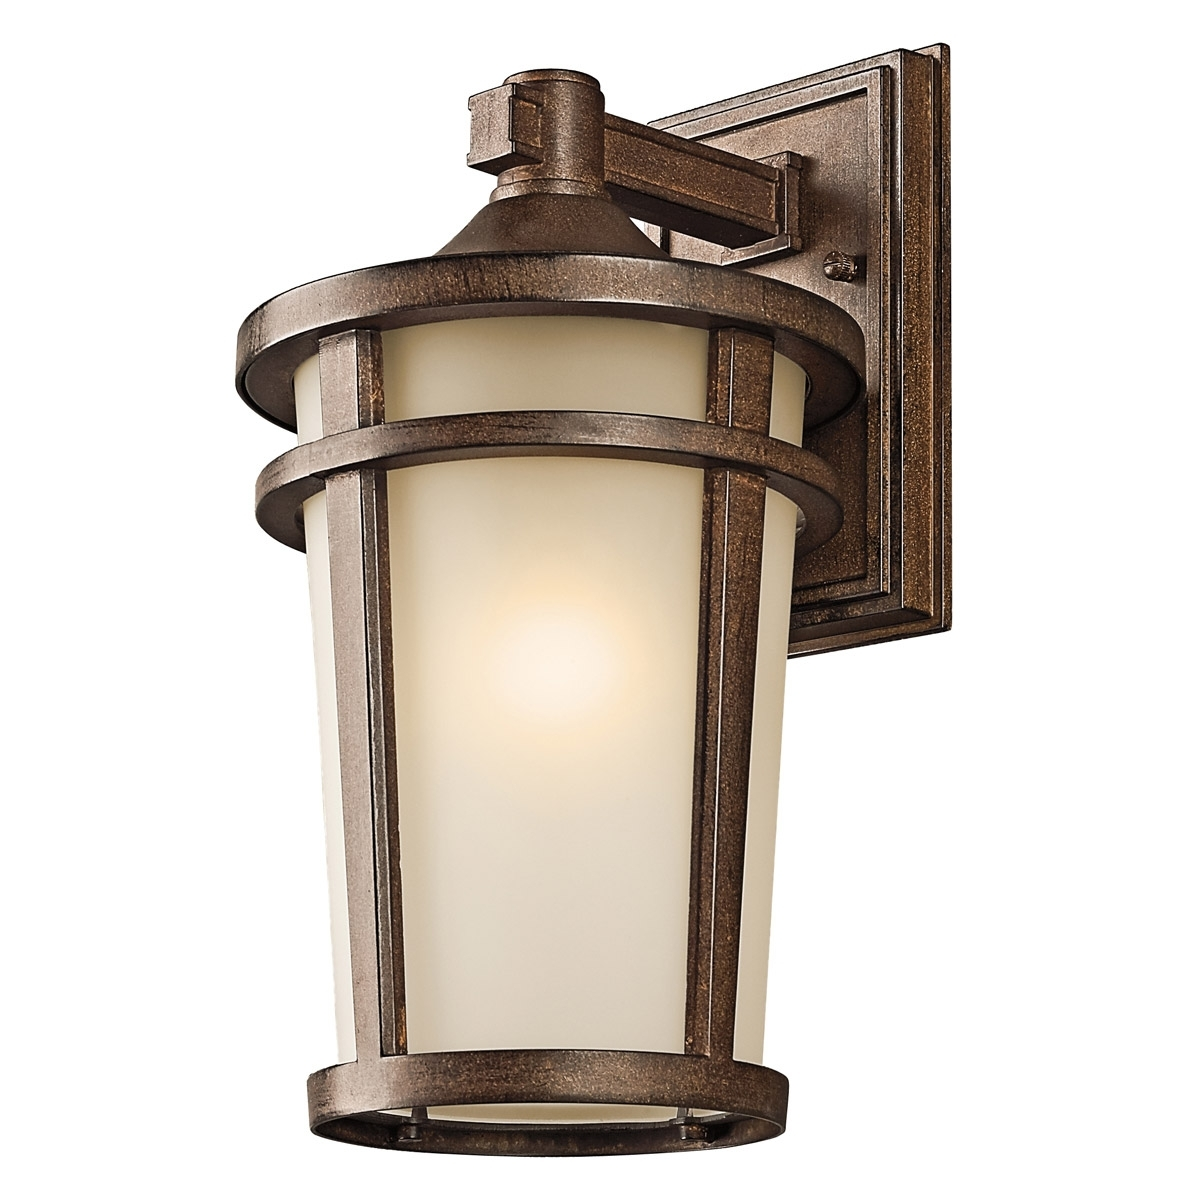 2018 High Quality Outdoor Wall Lighting Within Light : Contemporary Outdoor Wall Lights Photo Exterior Mounted (View 3 of 20)